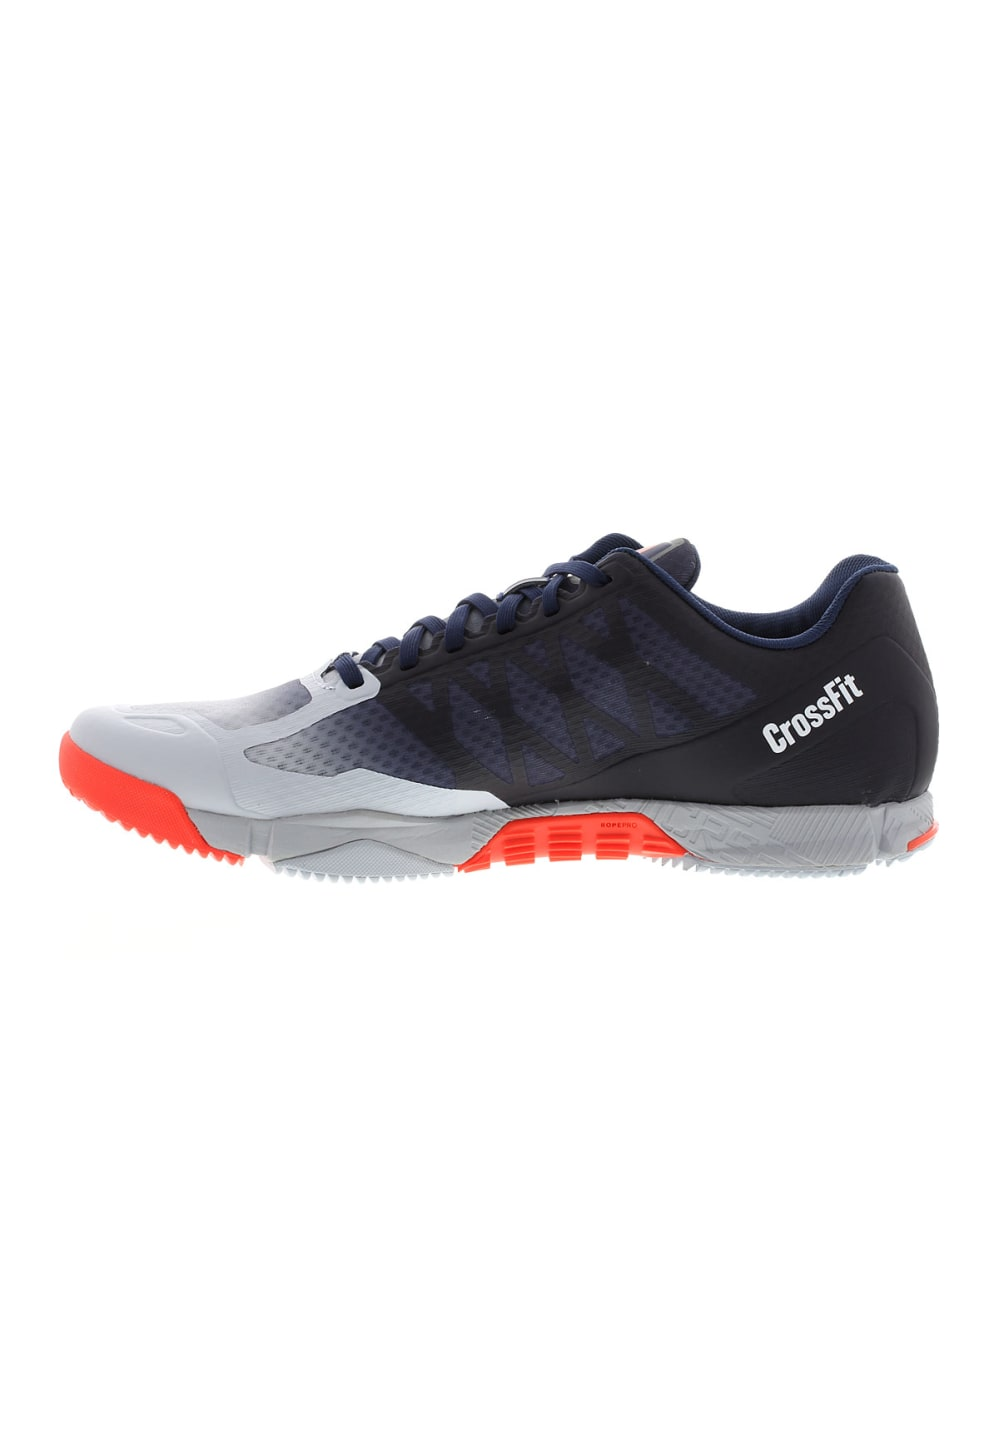 Reebok Crossfit Speed TR Fitness shoes for Men Grey